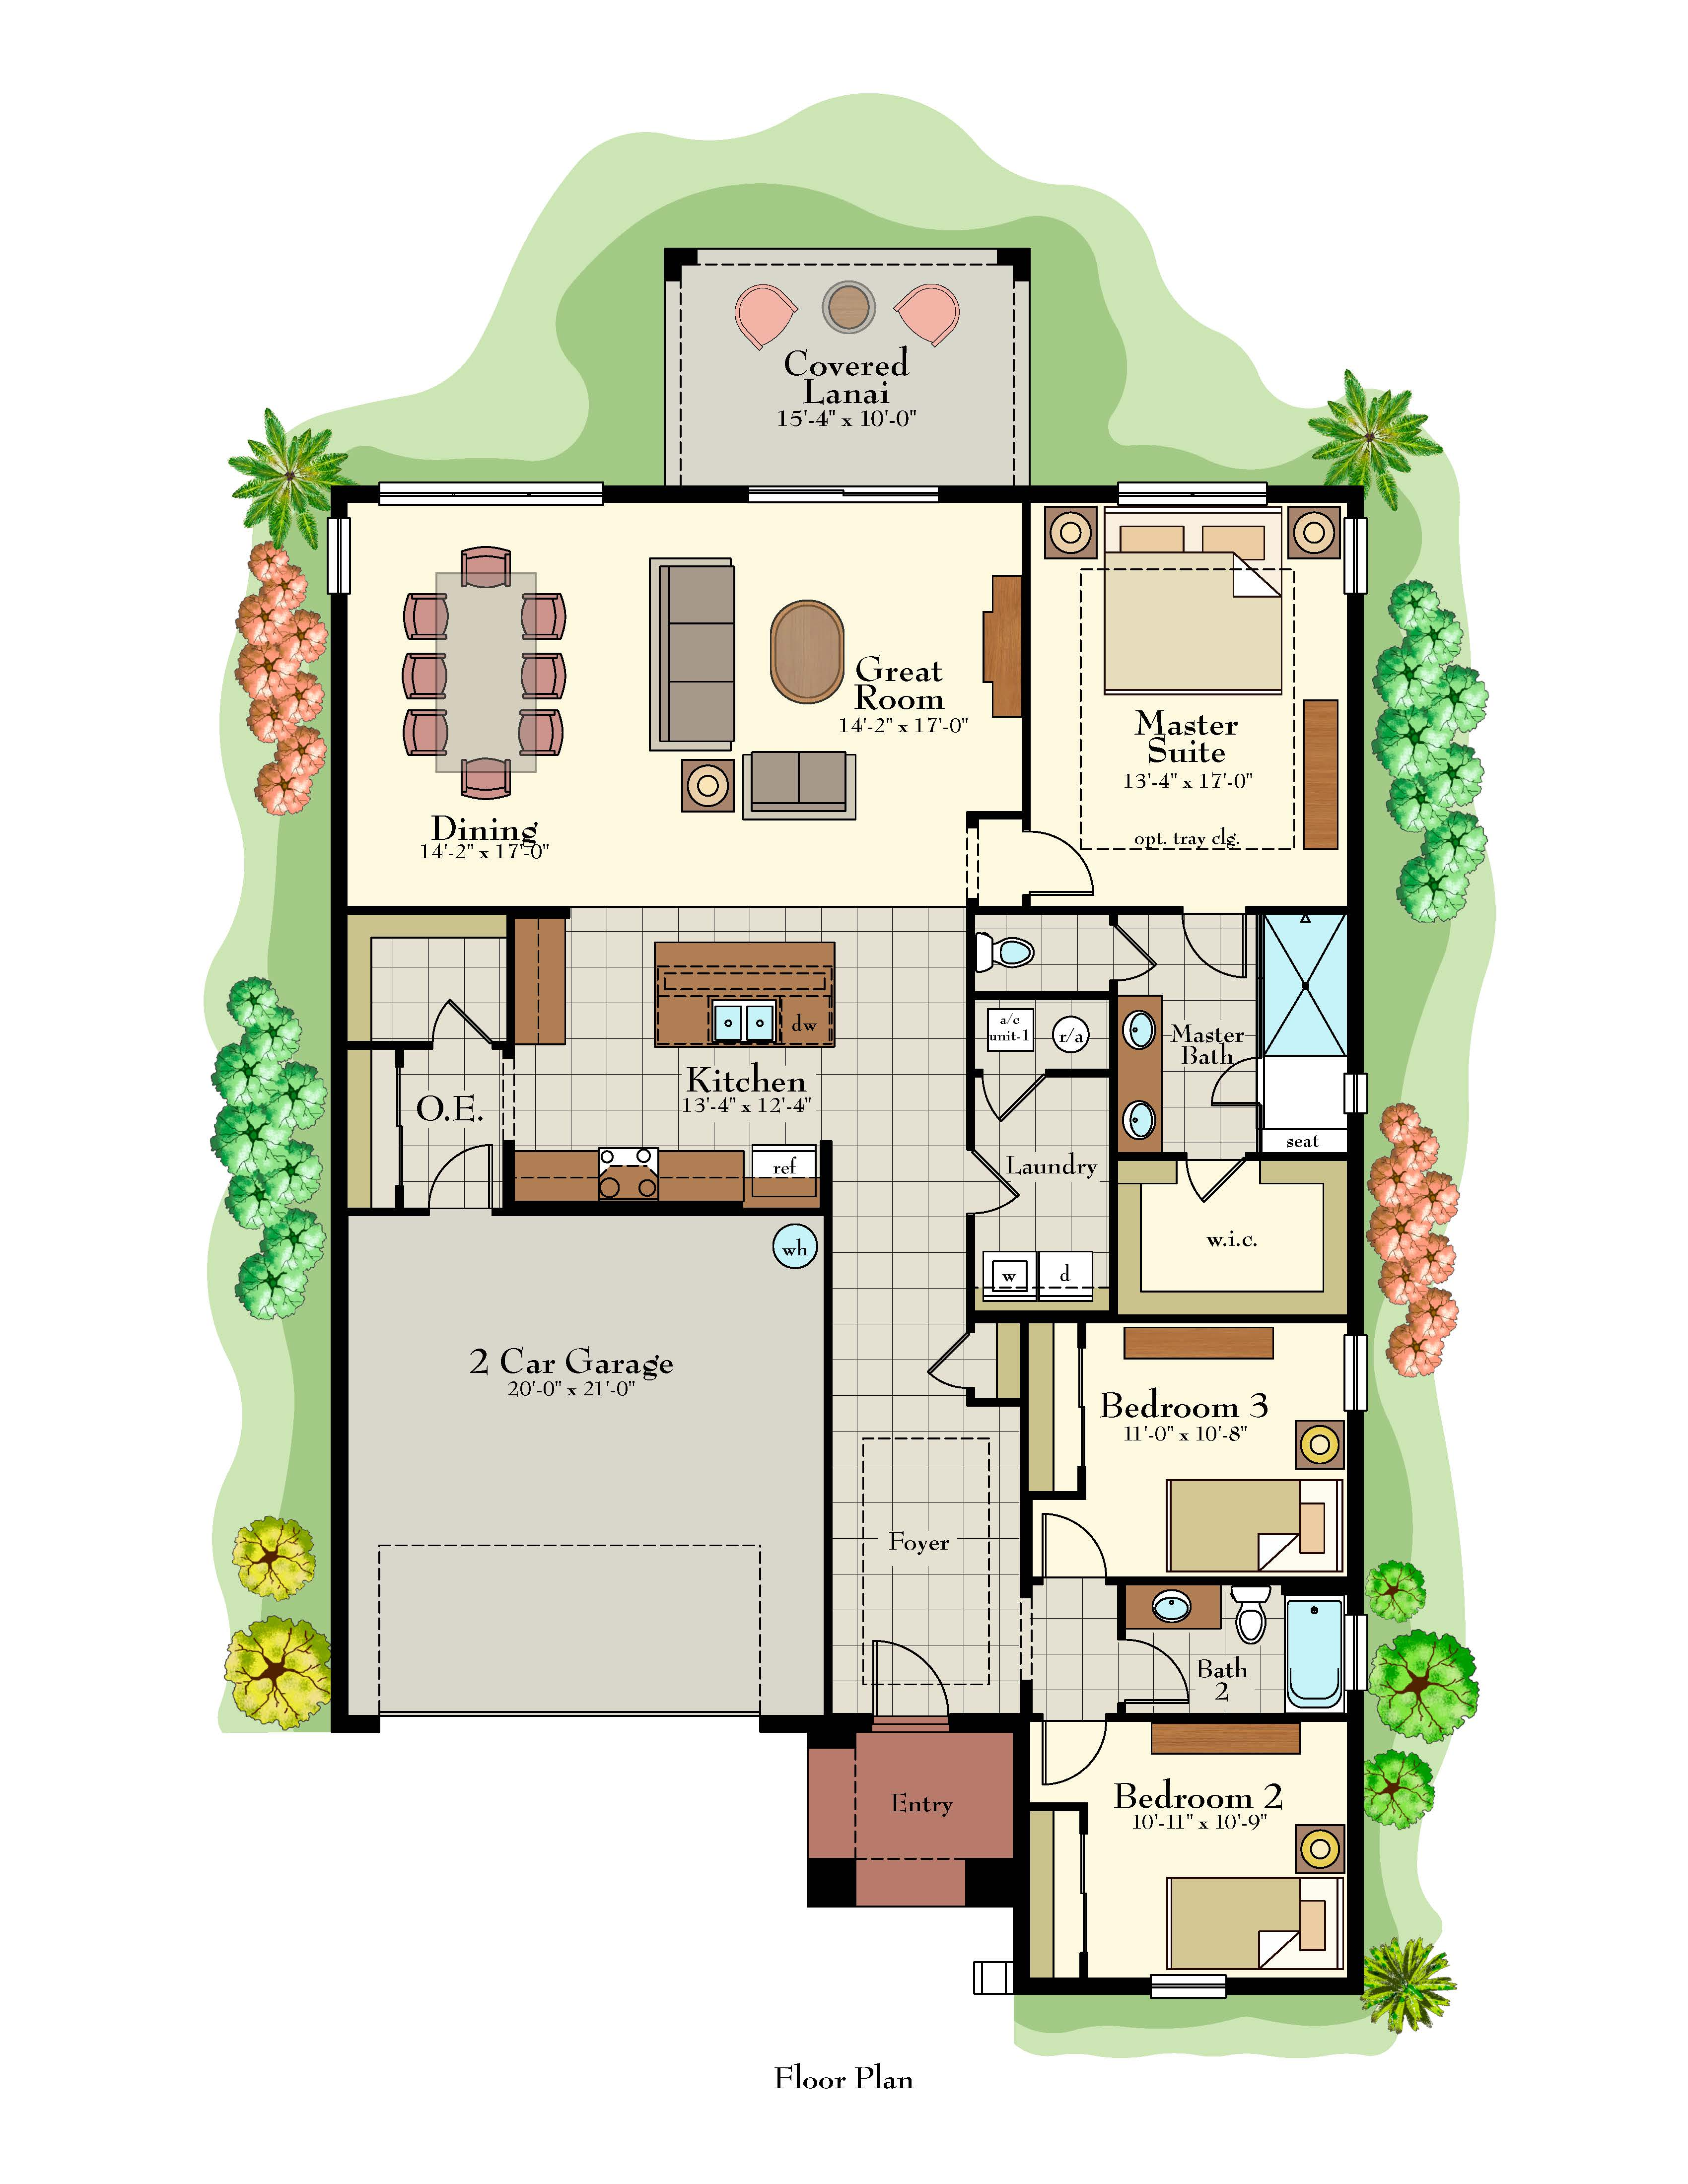 55 community quick move in golf cart garage floridadigs for Golf cart plans